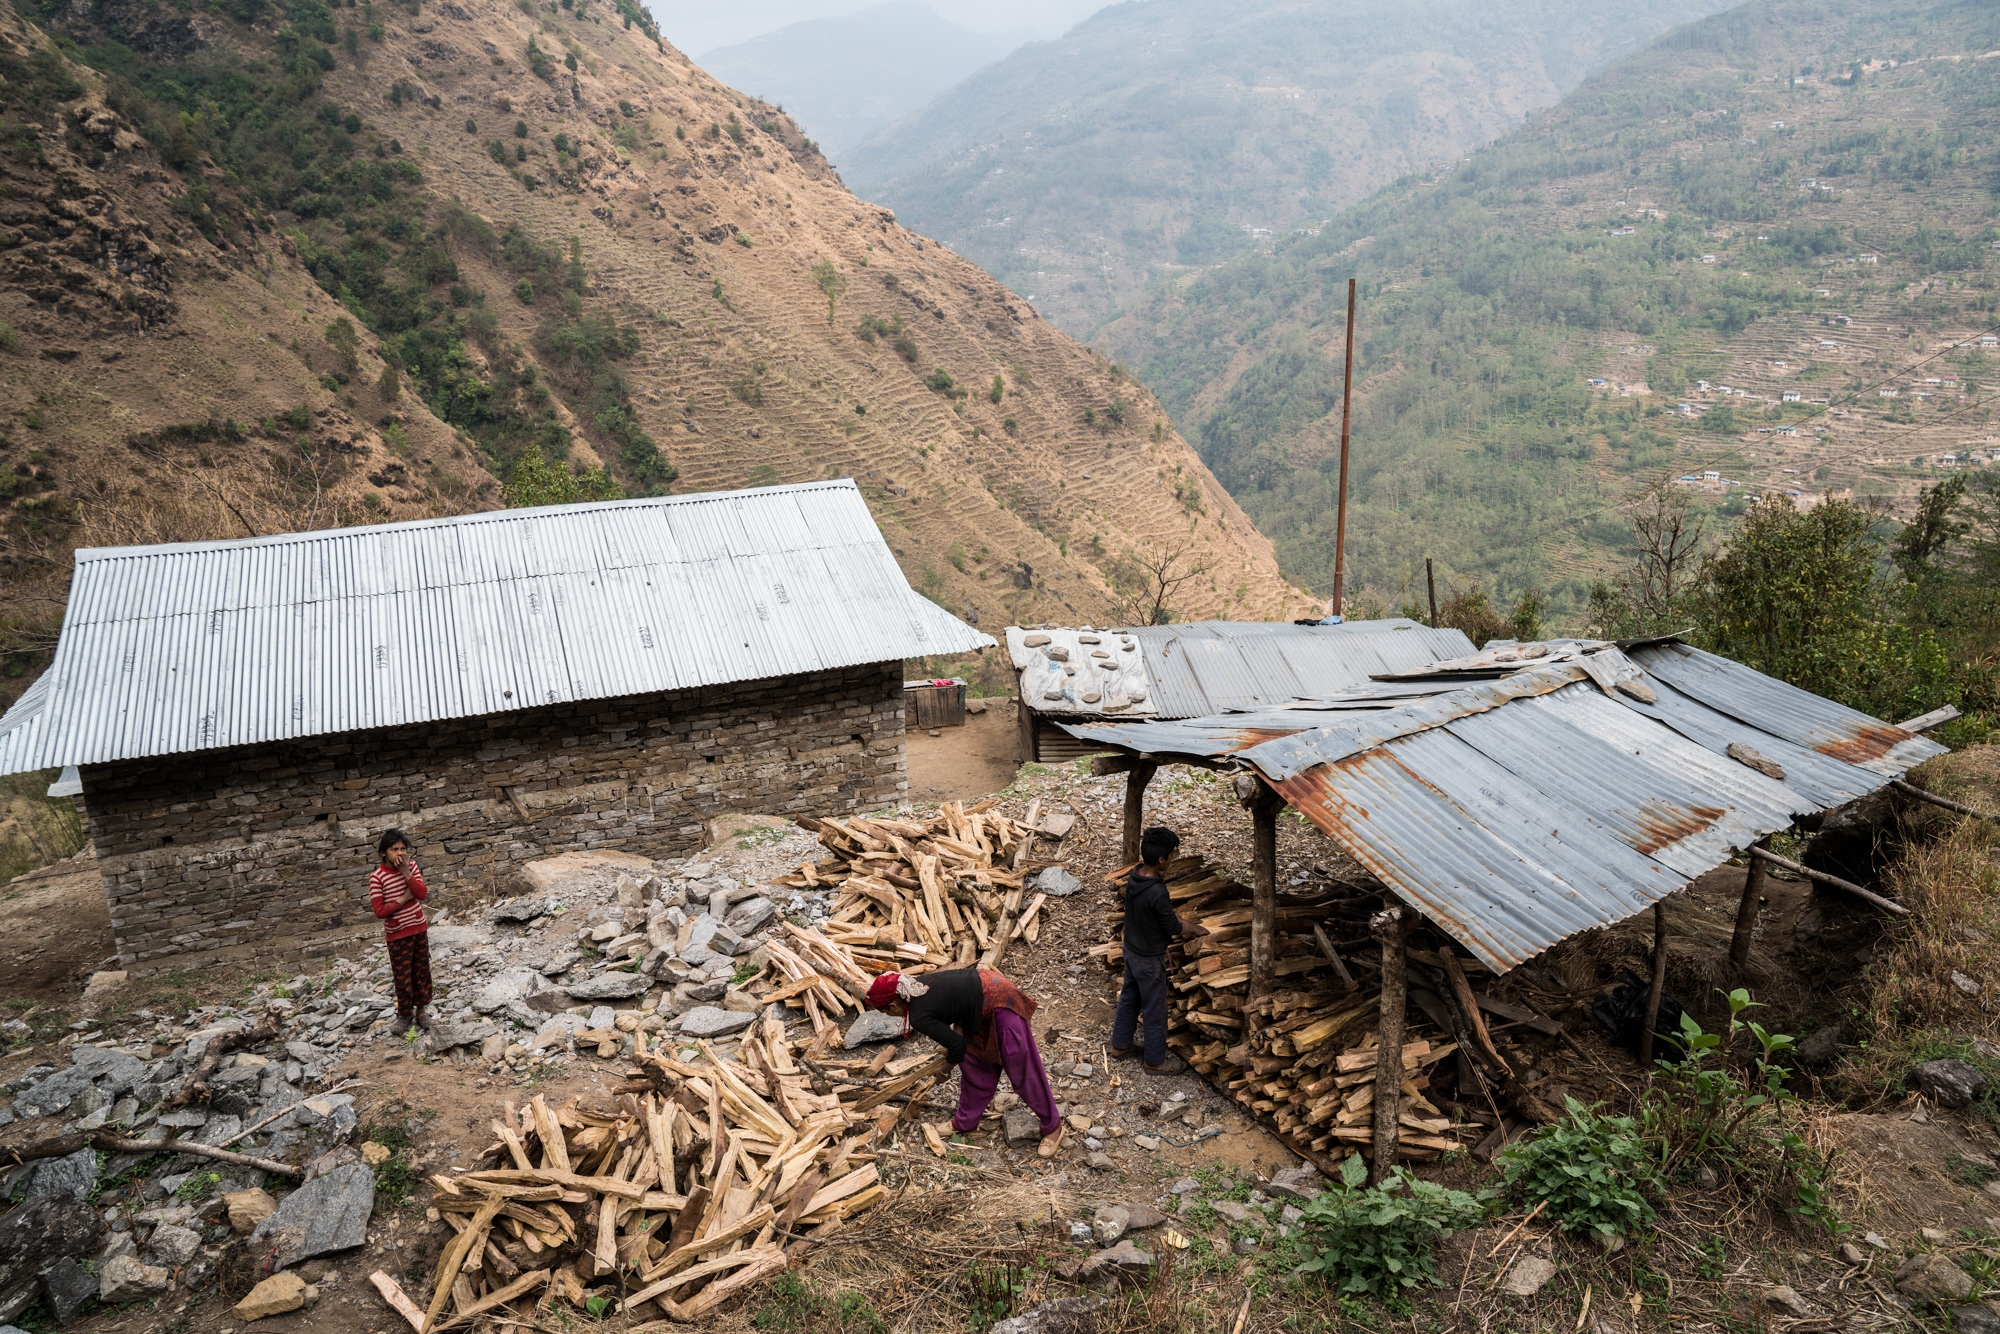 A family cut and store firewood, for cooking, which has been sourced from already deforested parts of the Nepali Himalaya.